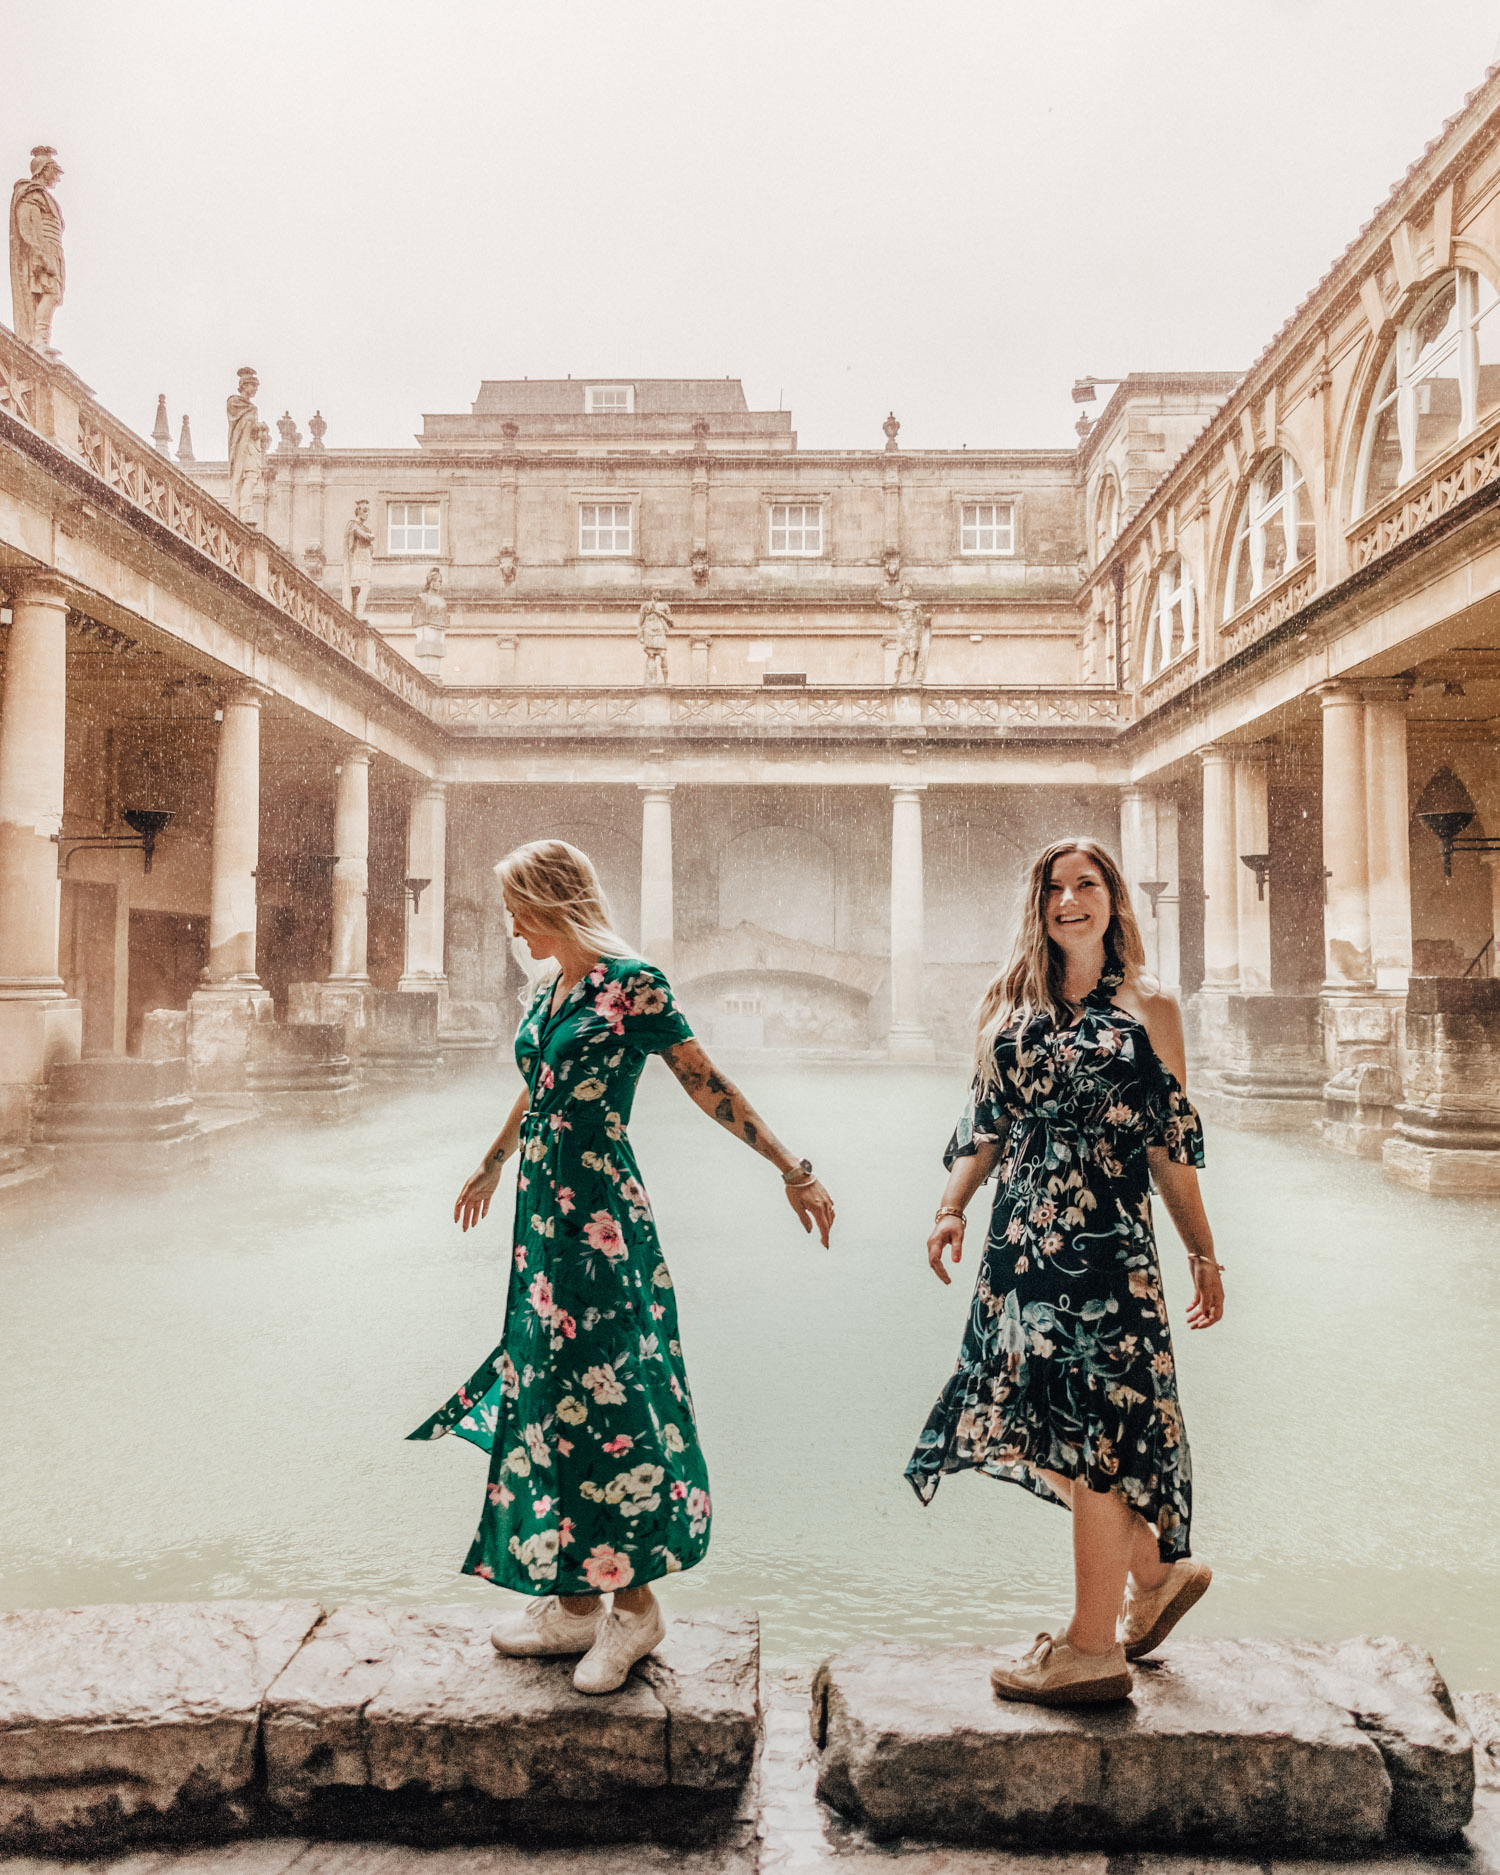 A Weekend in Bath | The Roman Baths - Things to see in Bath, Somerset